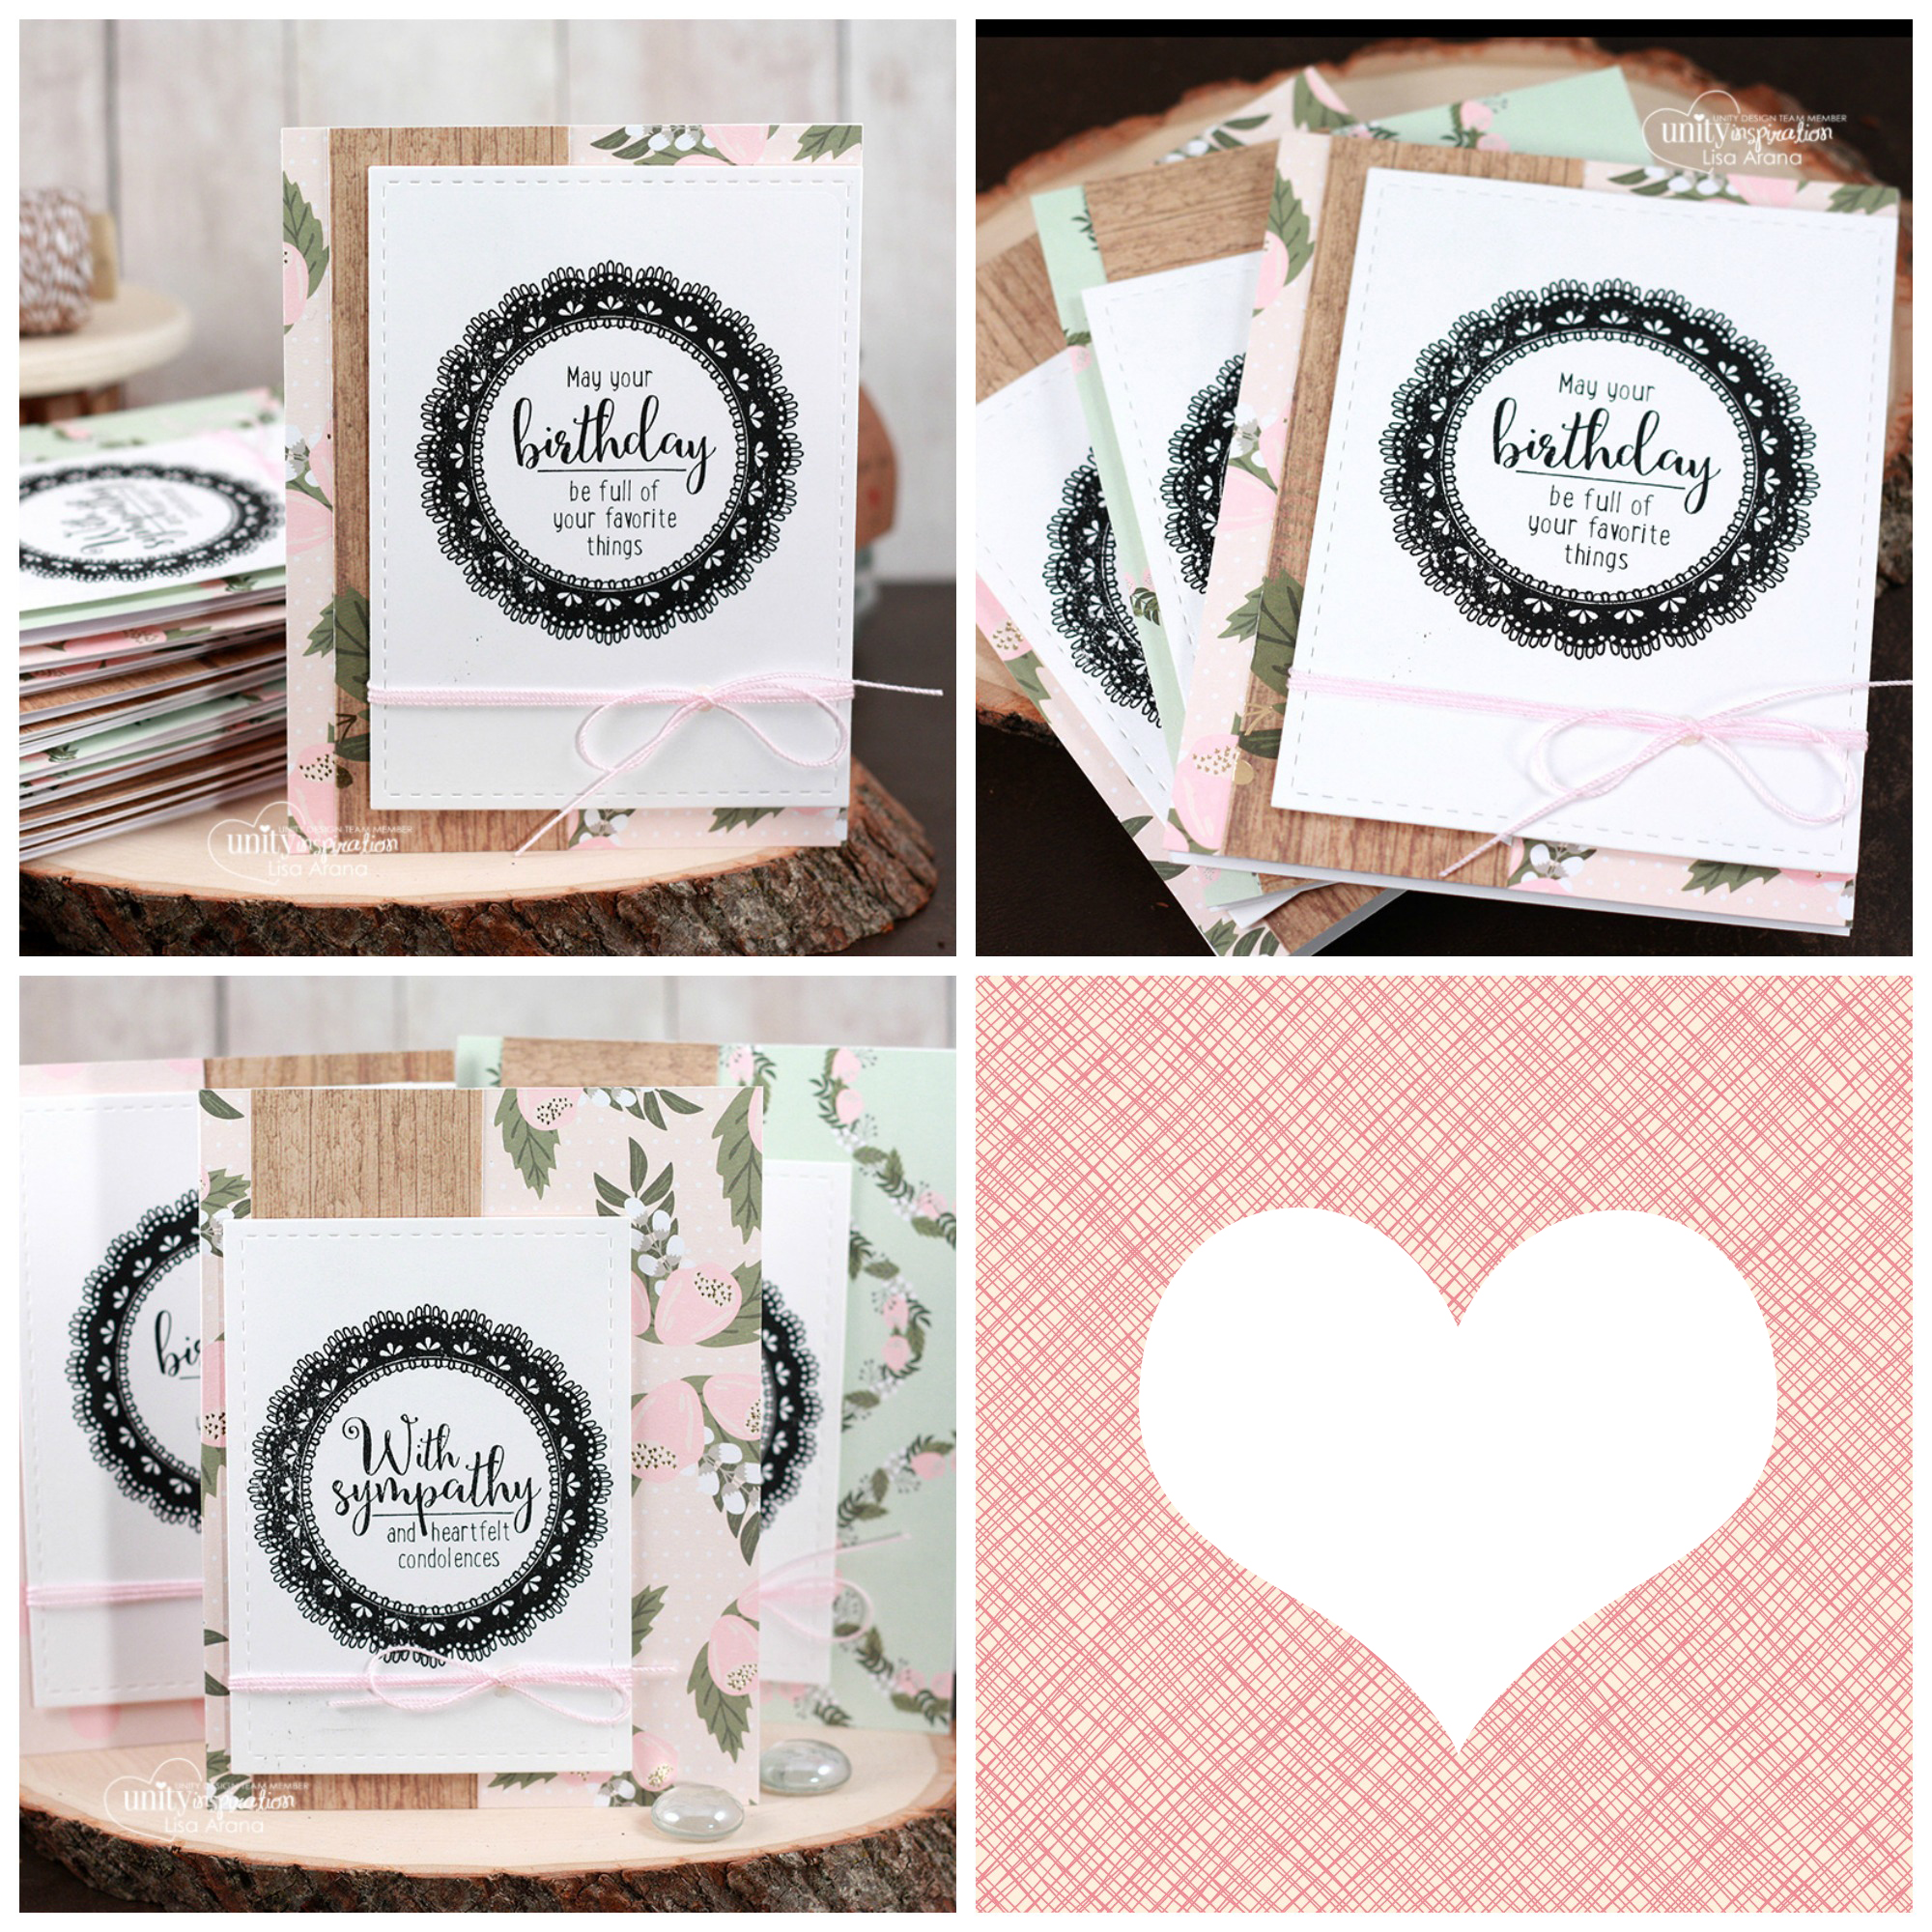 Sharing a set of handmade cards for all occasions using I Consider You Special by Unity Stamp Company. #cardmaking #cardmaker #cards #stamping #dahlhousedesigns #unitystampco #handmadecards #diecutting #diy #stationary